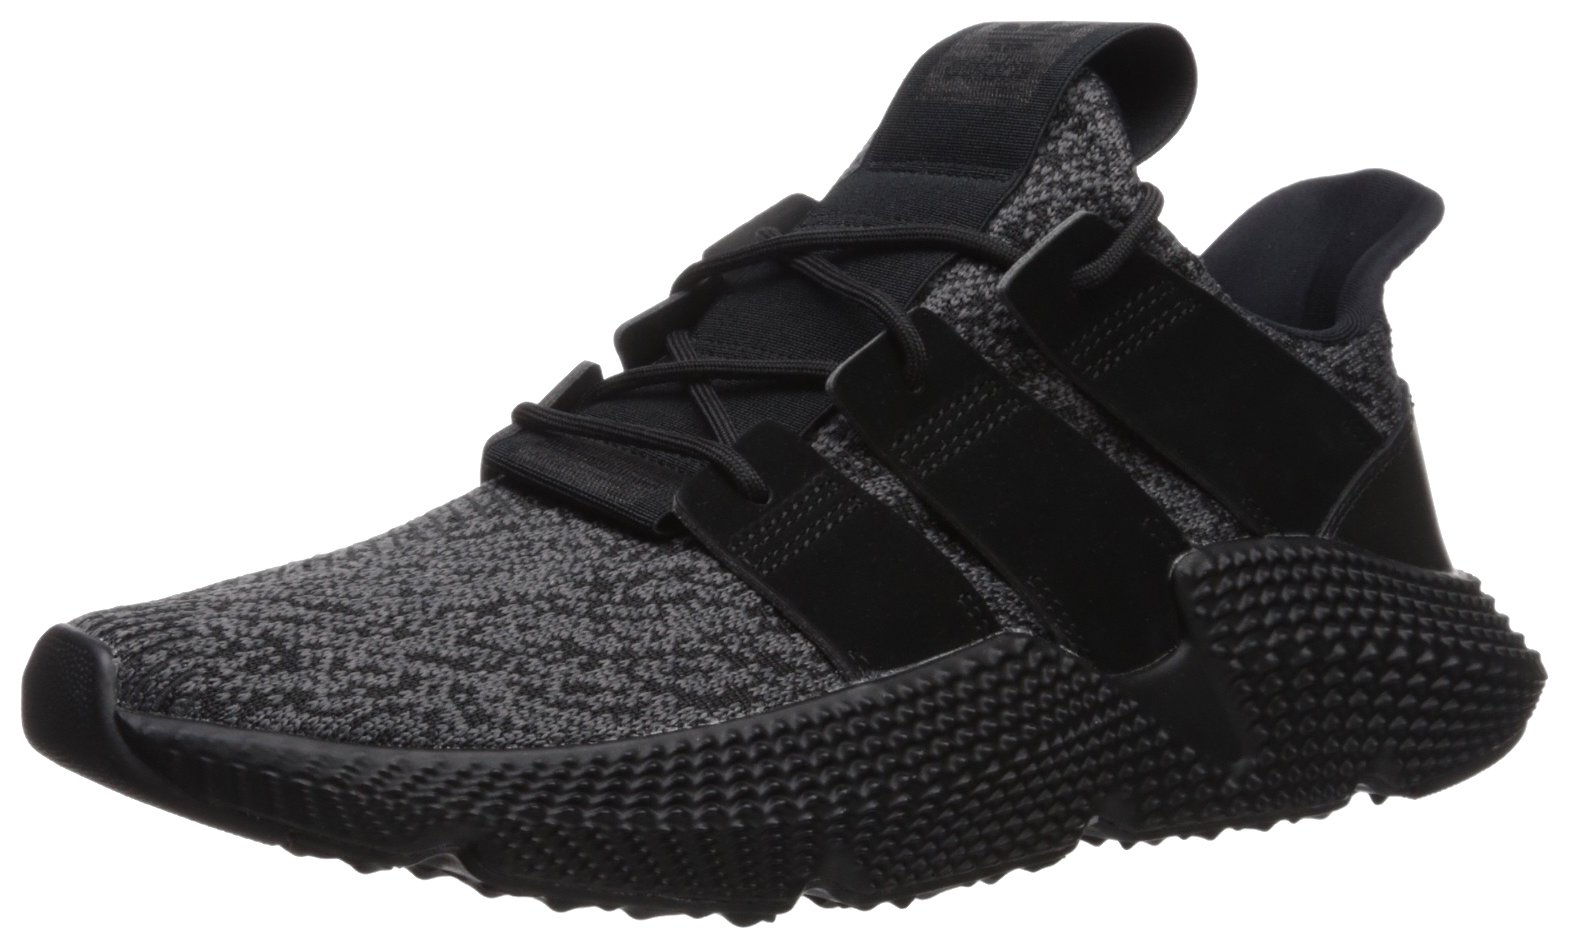 adidas Originals Men's Prophere, Black/Black/Solid Red, 10 M US by adidas Originals